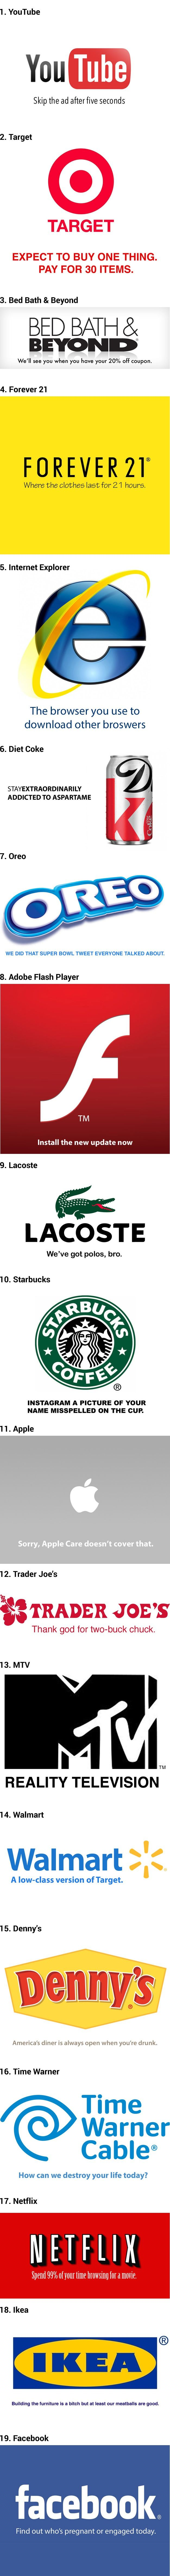 19 Honest Company Slogans You Might Agree With! Oh my gosh this is hilarious!